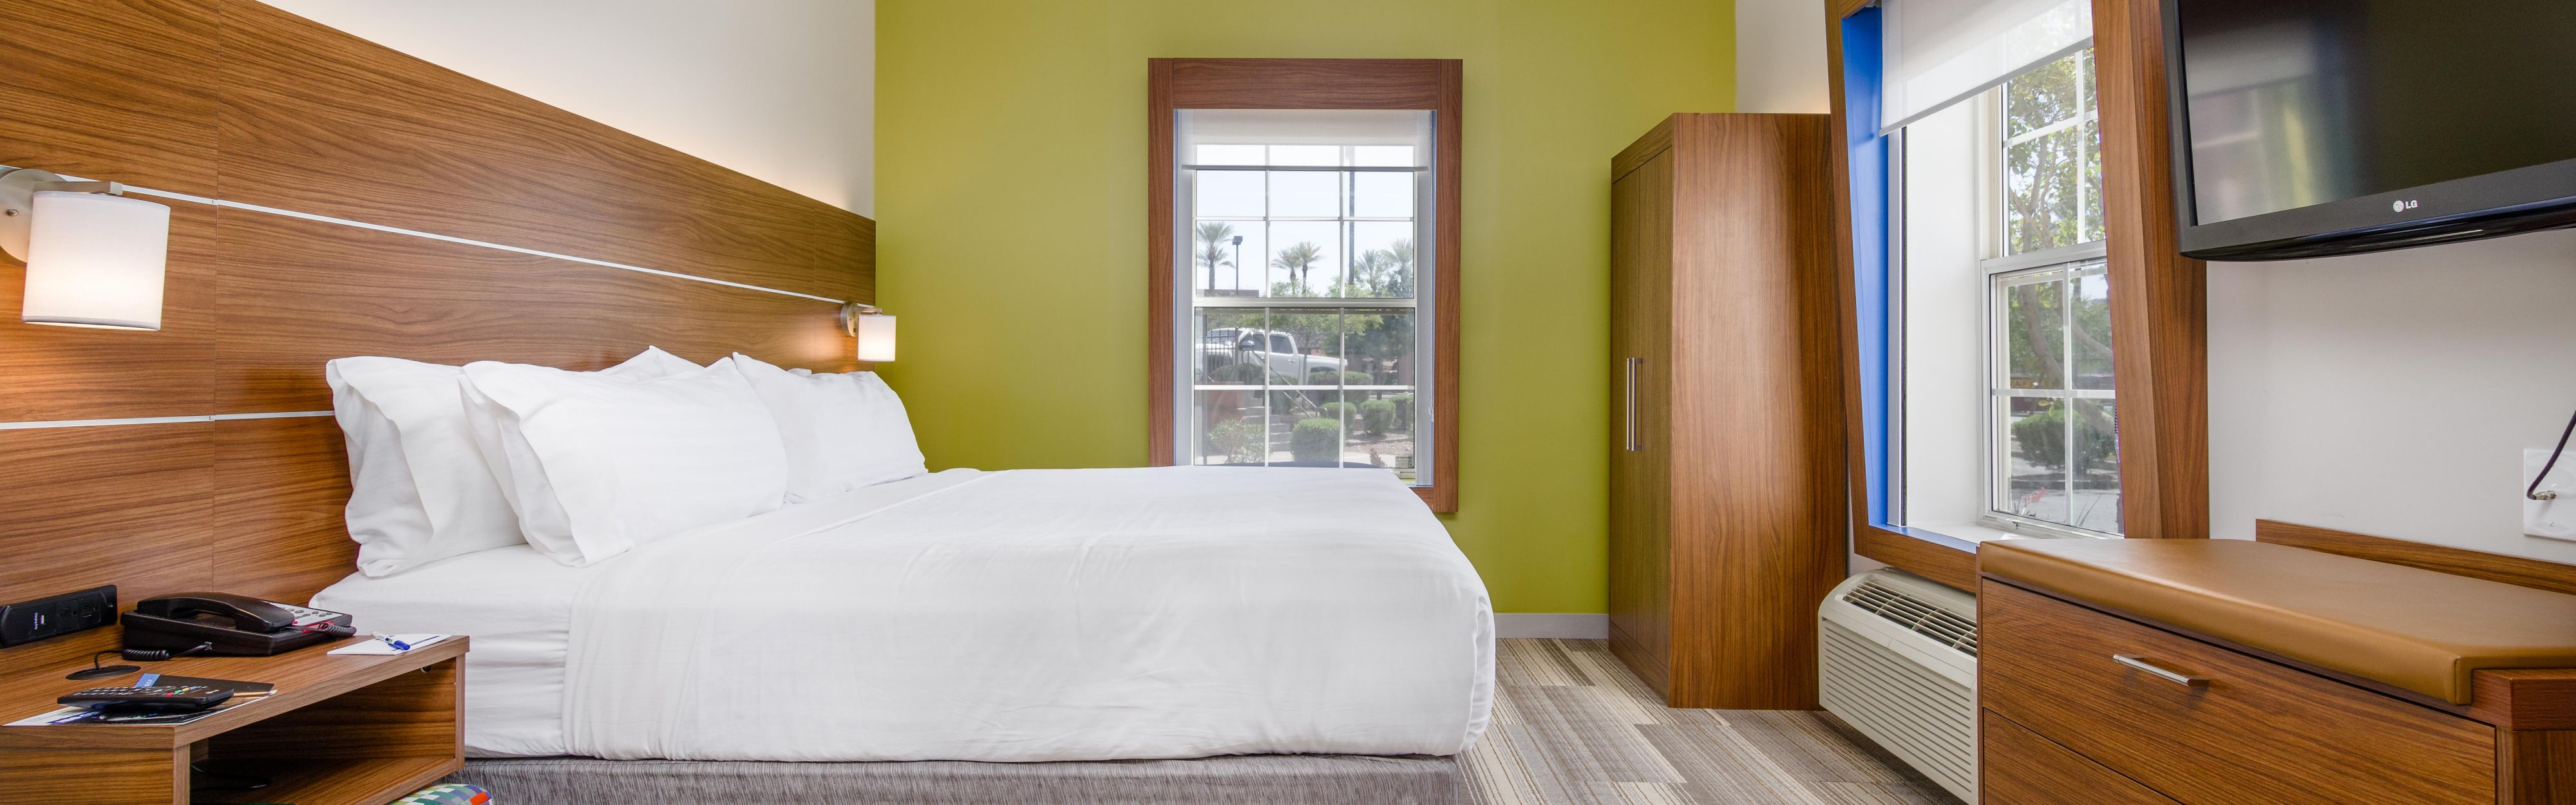 Holiday Inn Express & Suites Phoenix Airport image 1